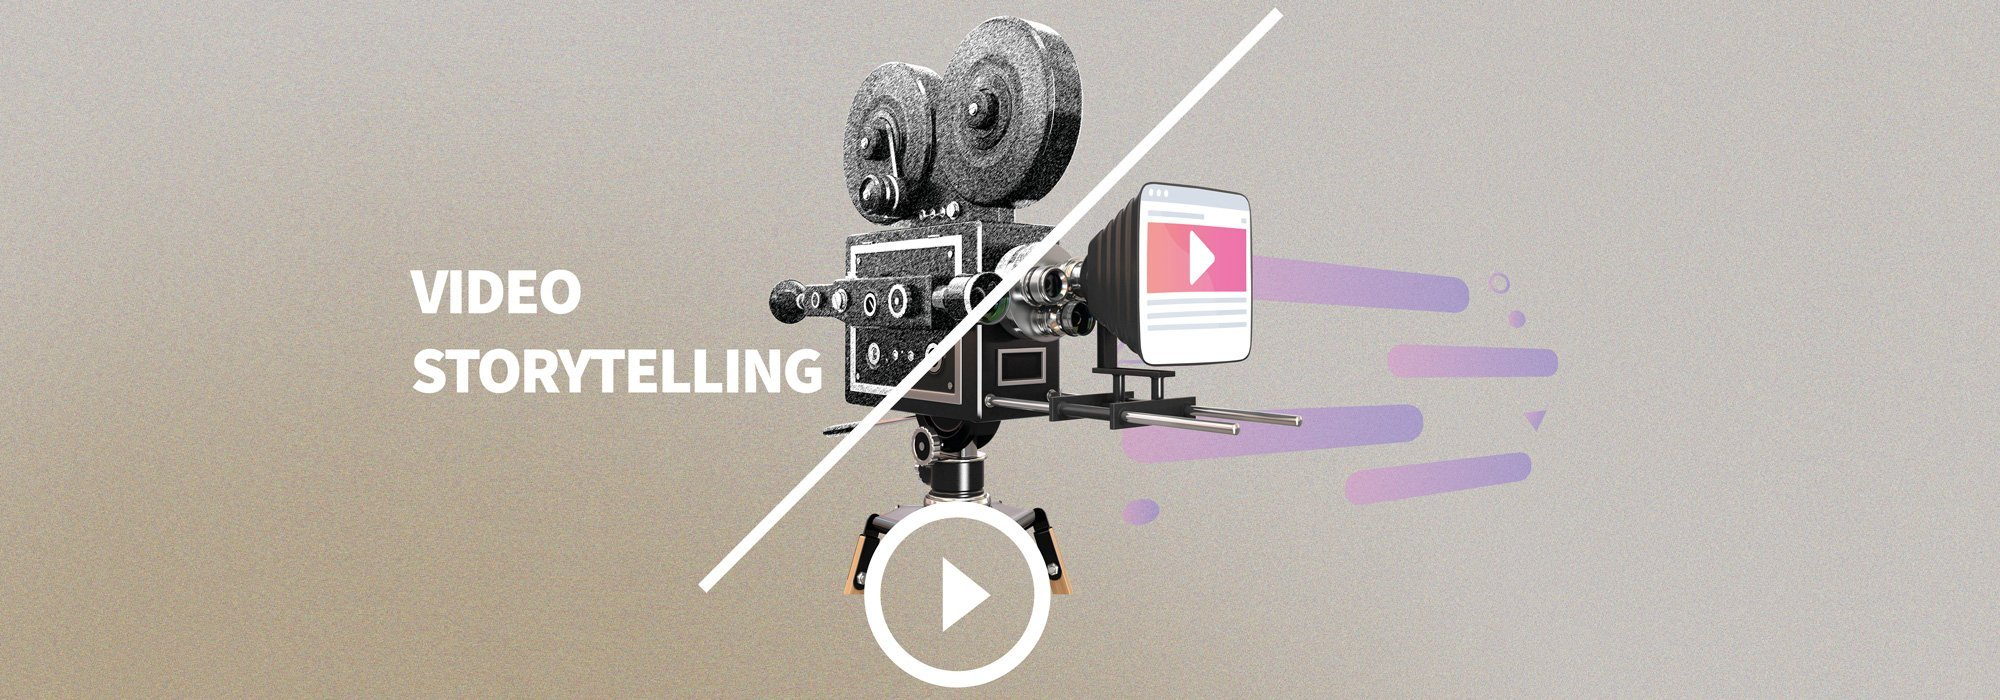 Lo storytelling nel video branded content